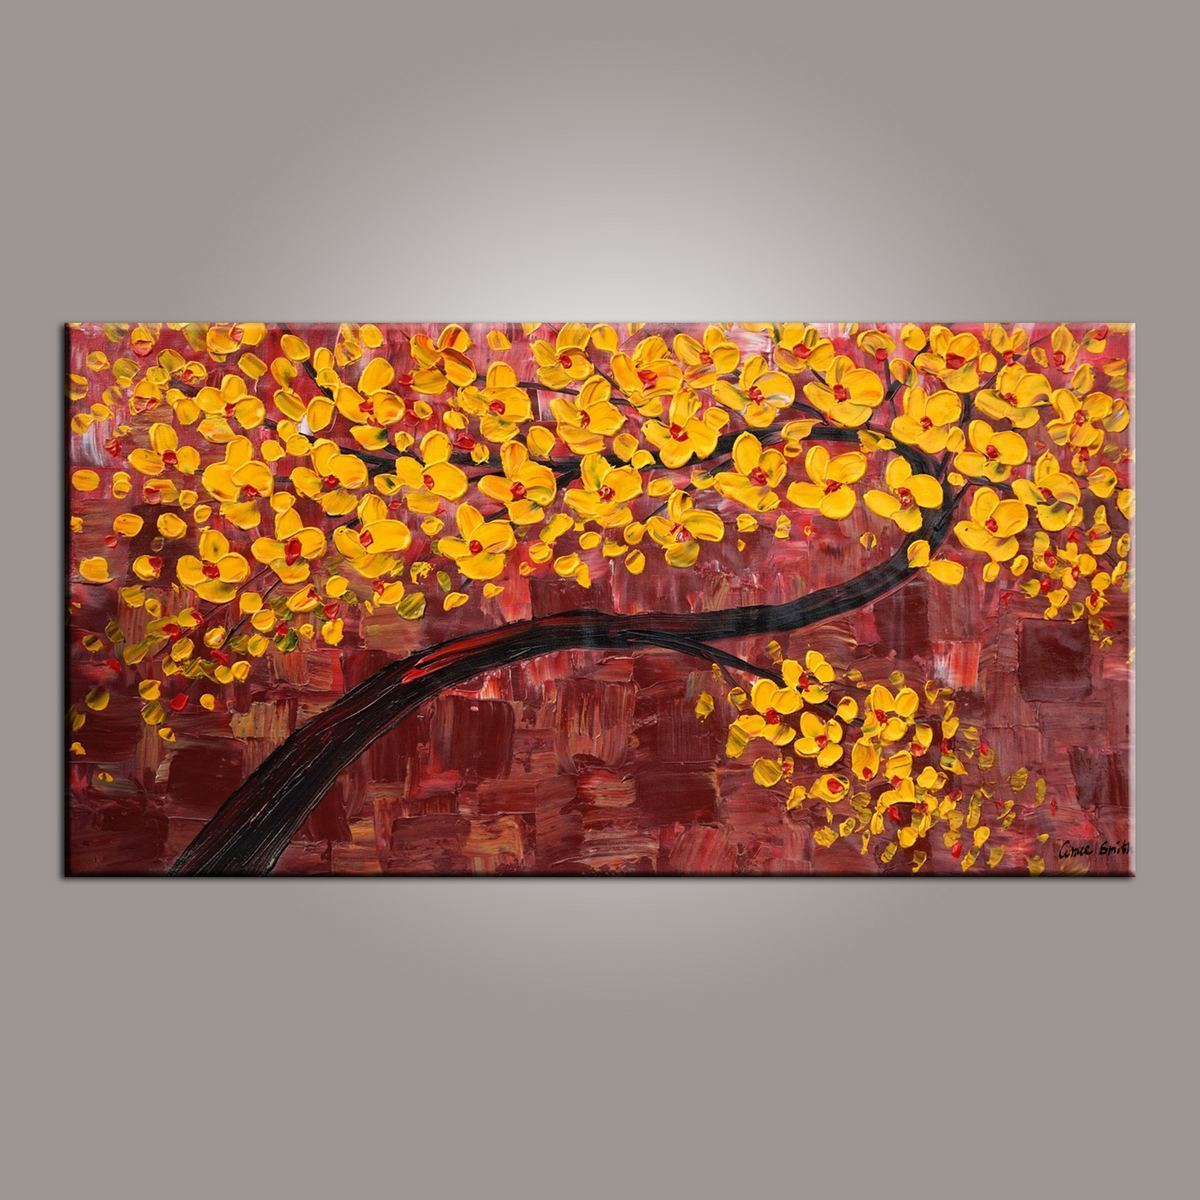 Painting on Sale, Canvas Art, Flower Tree Painting, Abstract Art Painting, Dining Room Wall Art, Art on Canvas, Modern Art, Contemporary Art - artworkcanvas